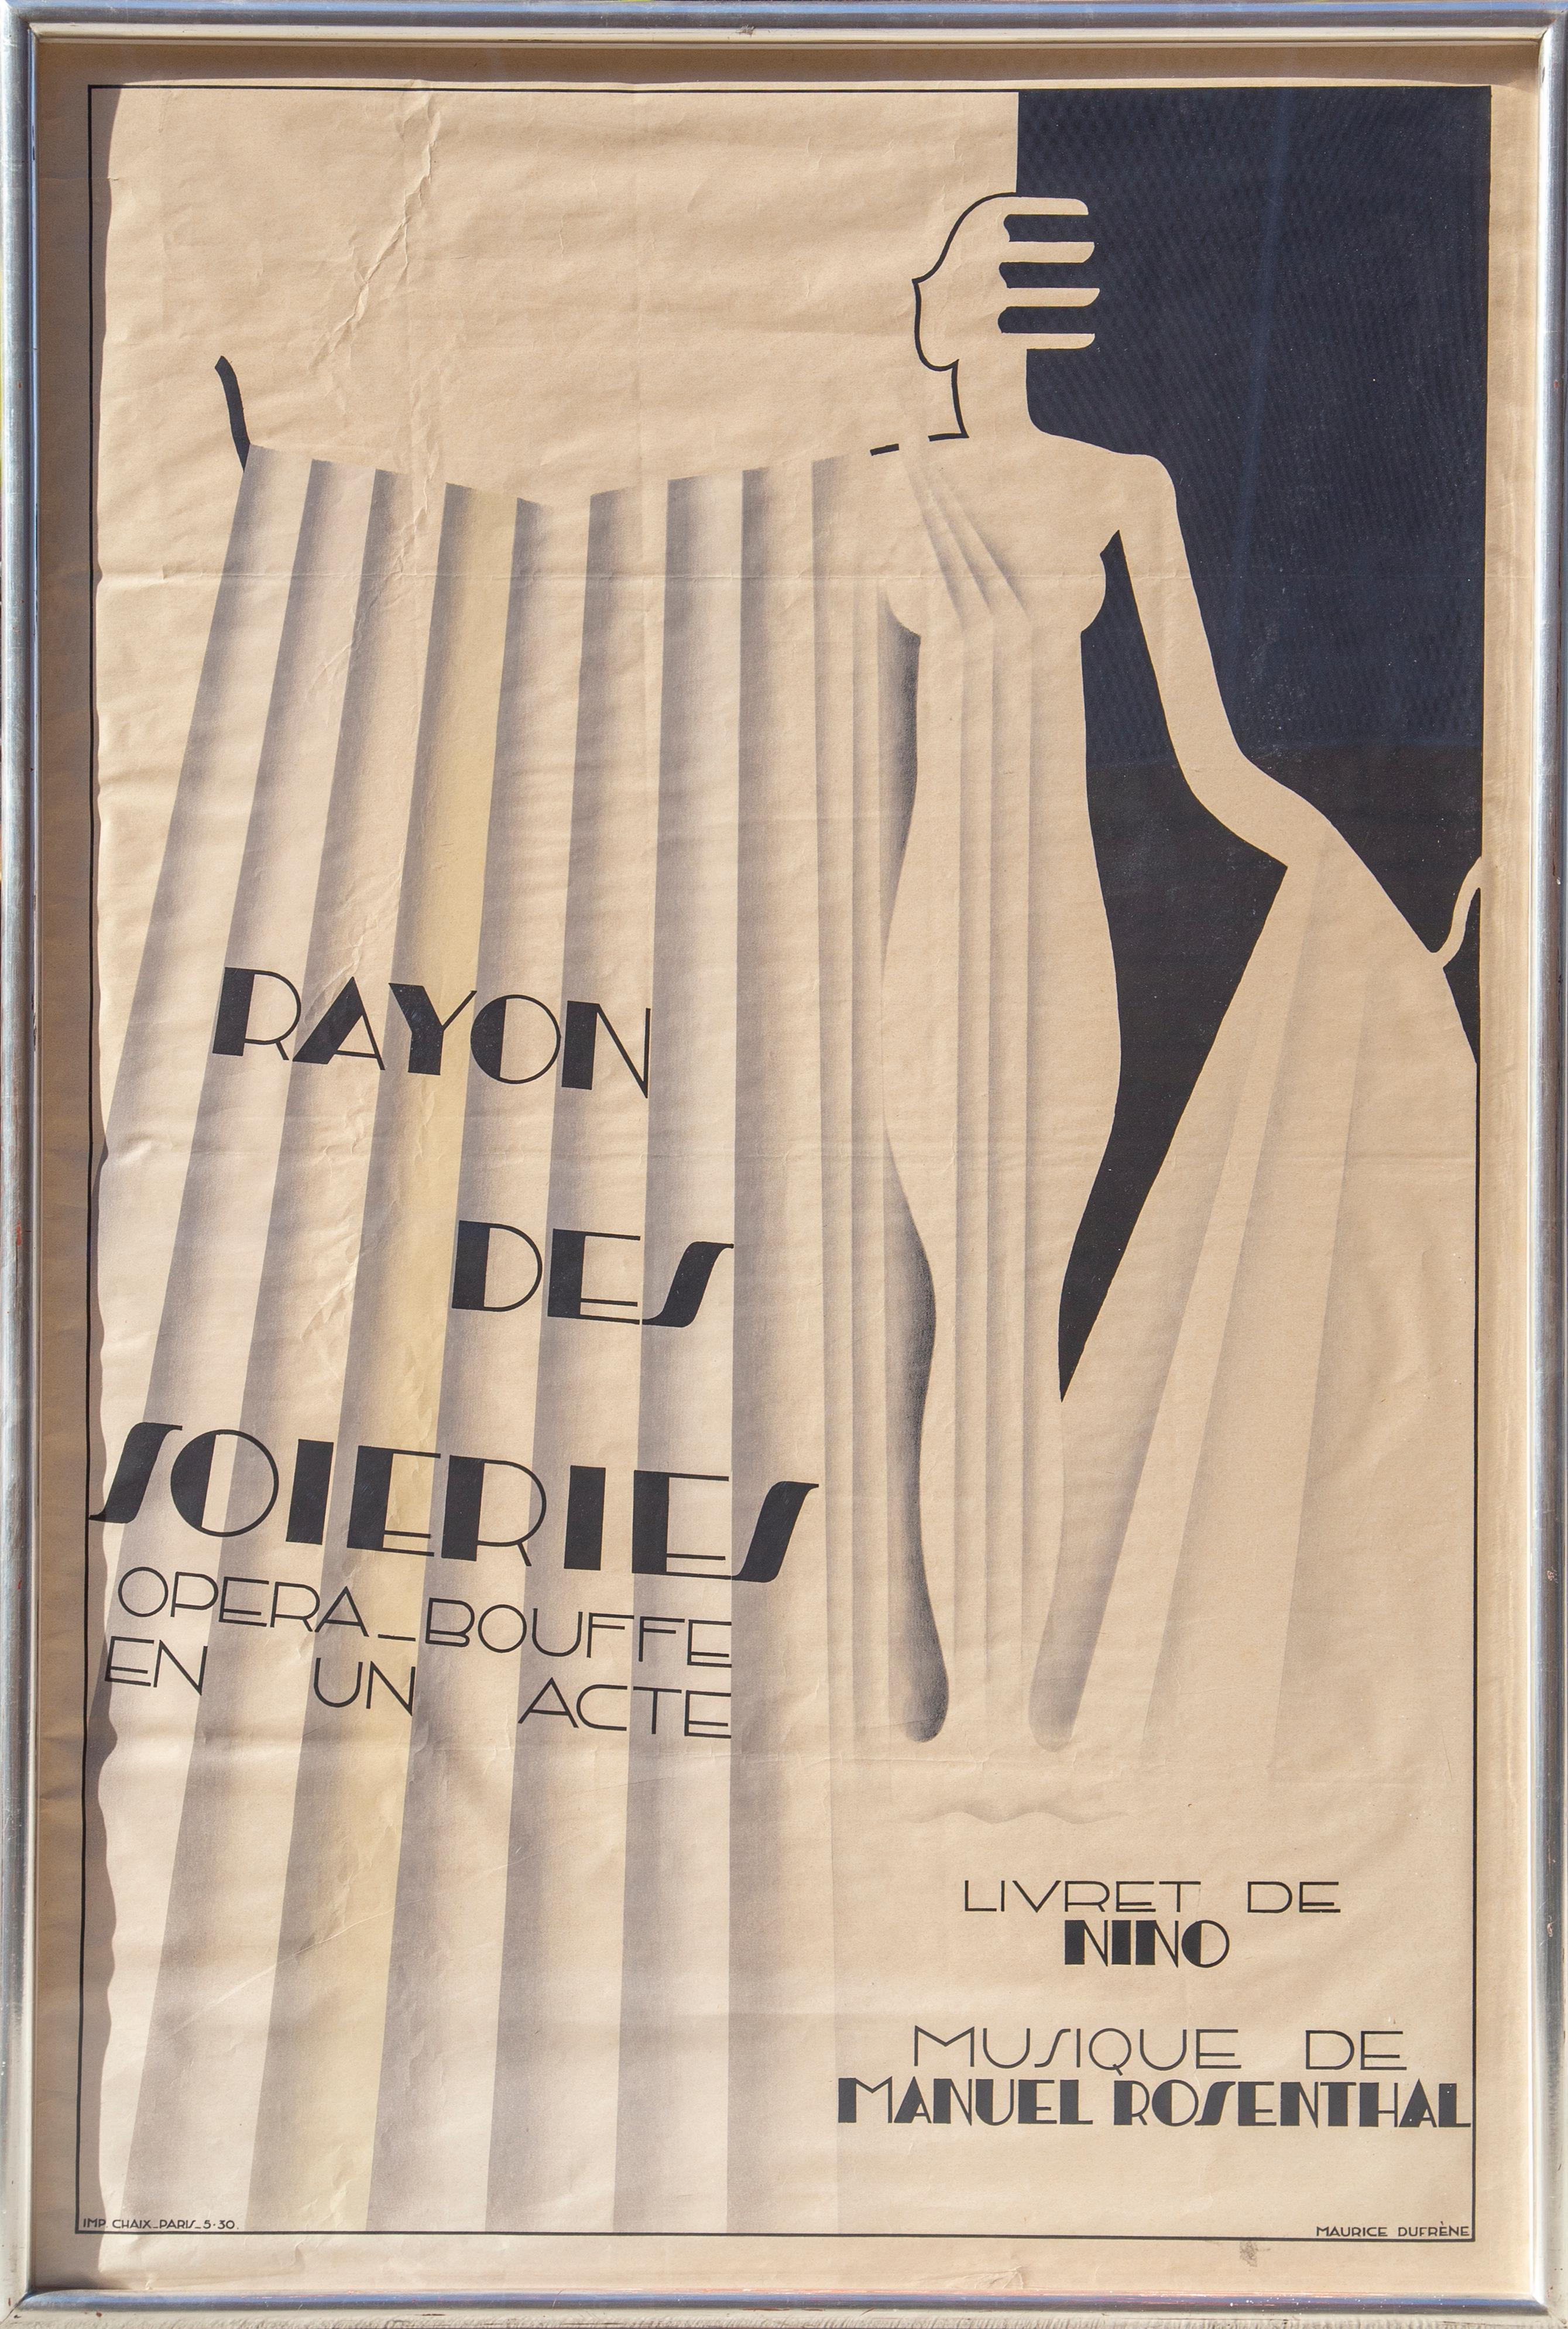 Rayon des Soieries, French Opera Poster by Maurice Dufrene 1930